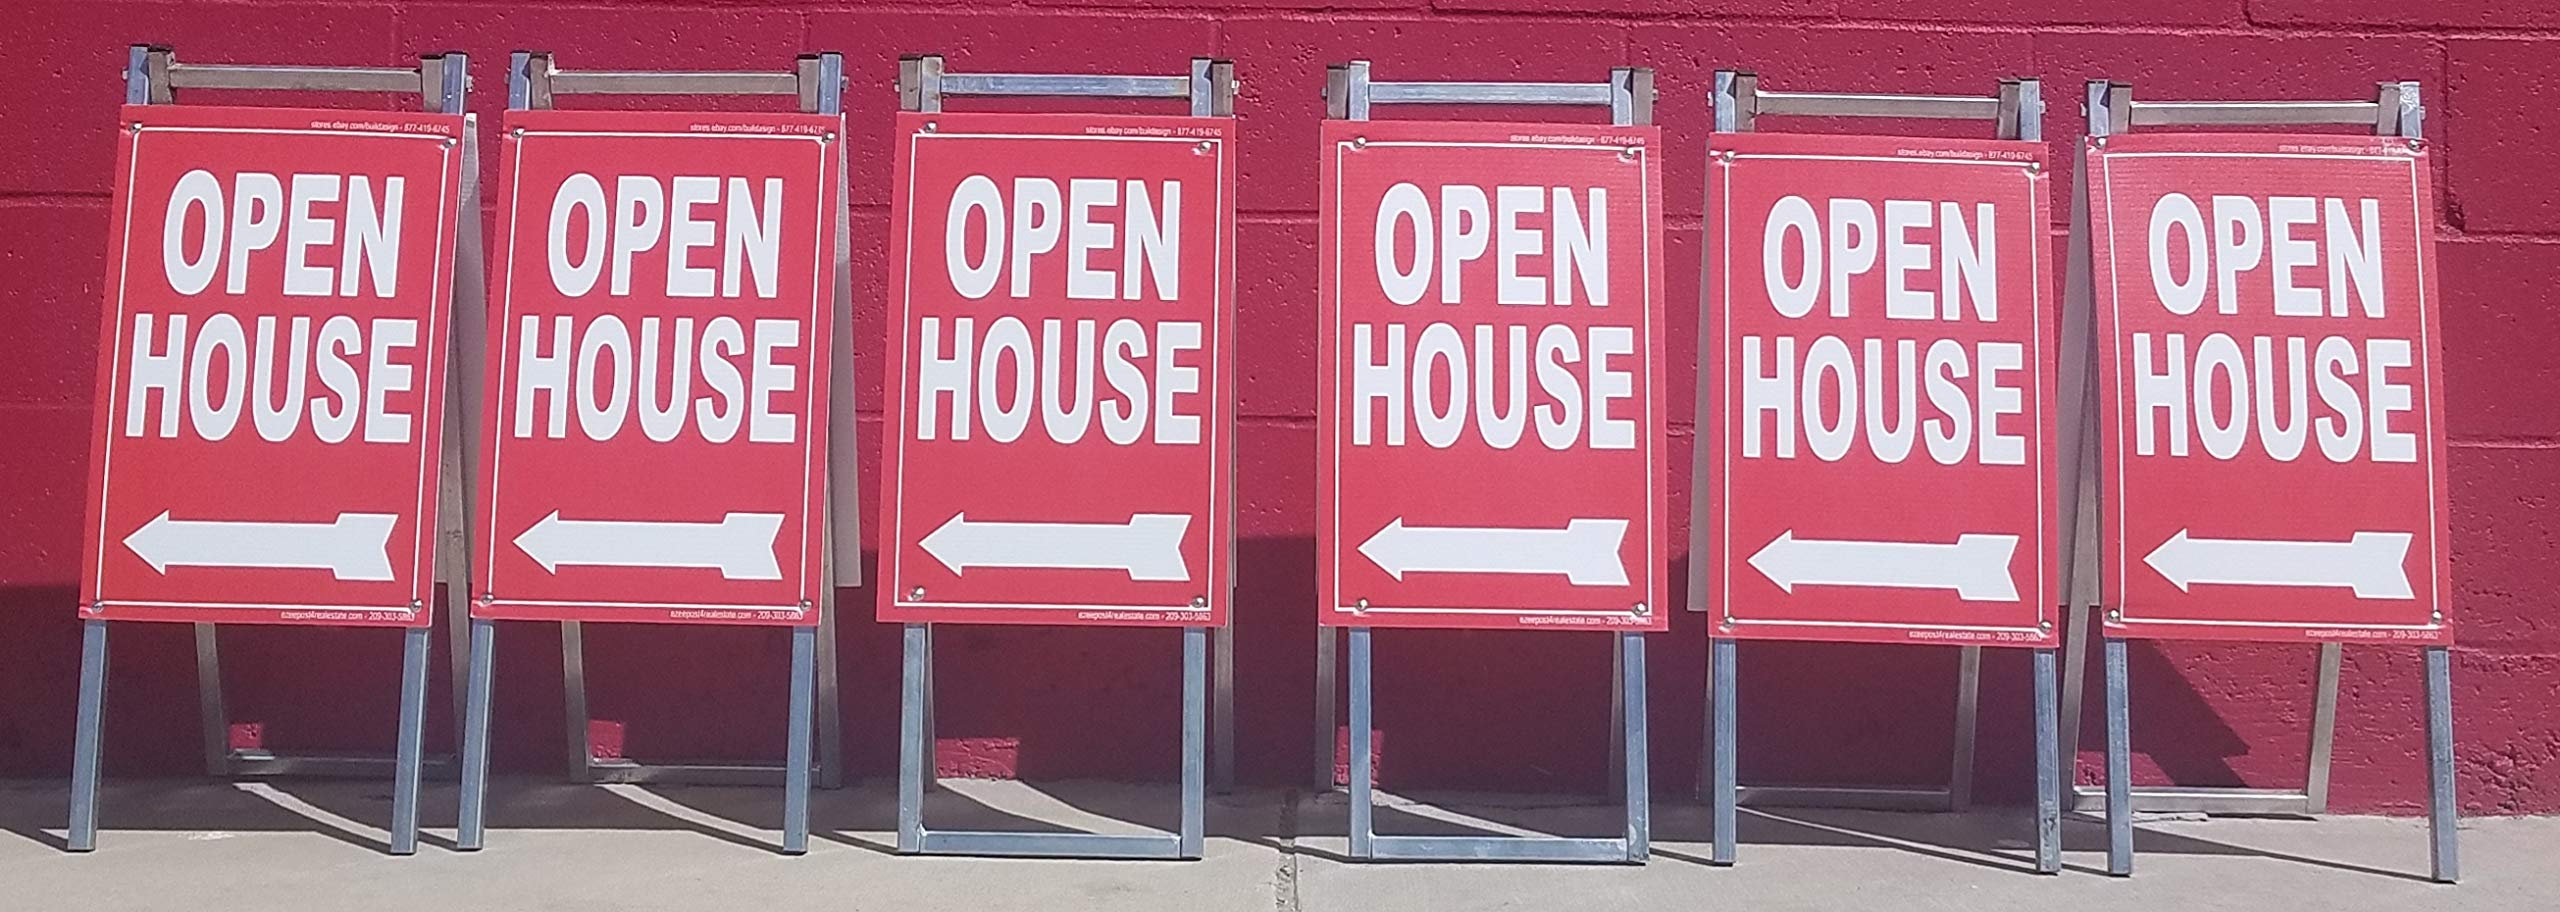 EZee Post Mini Open House A Frame Signs 6-Pack Kit RED